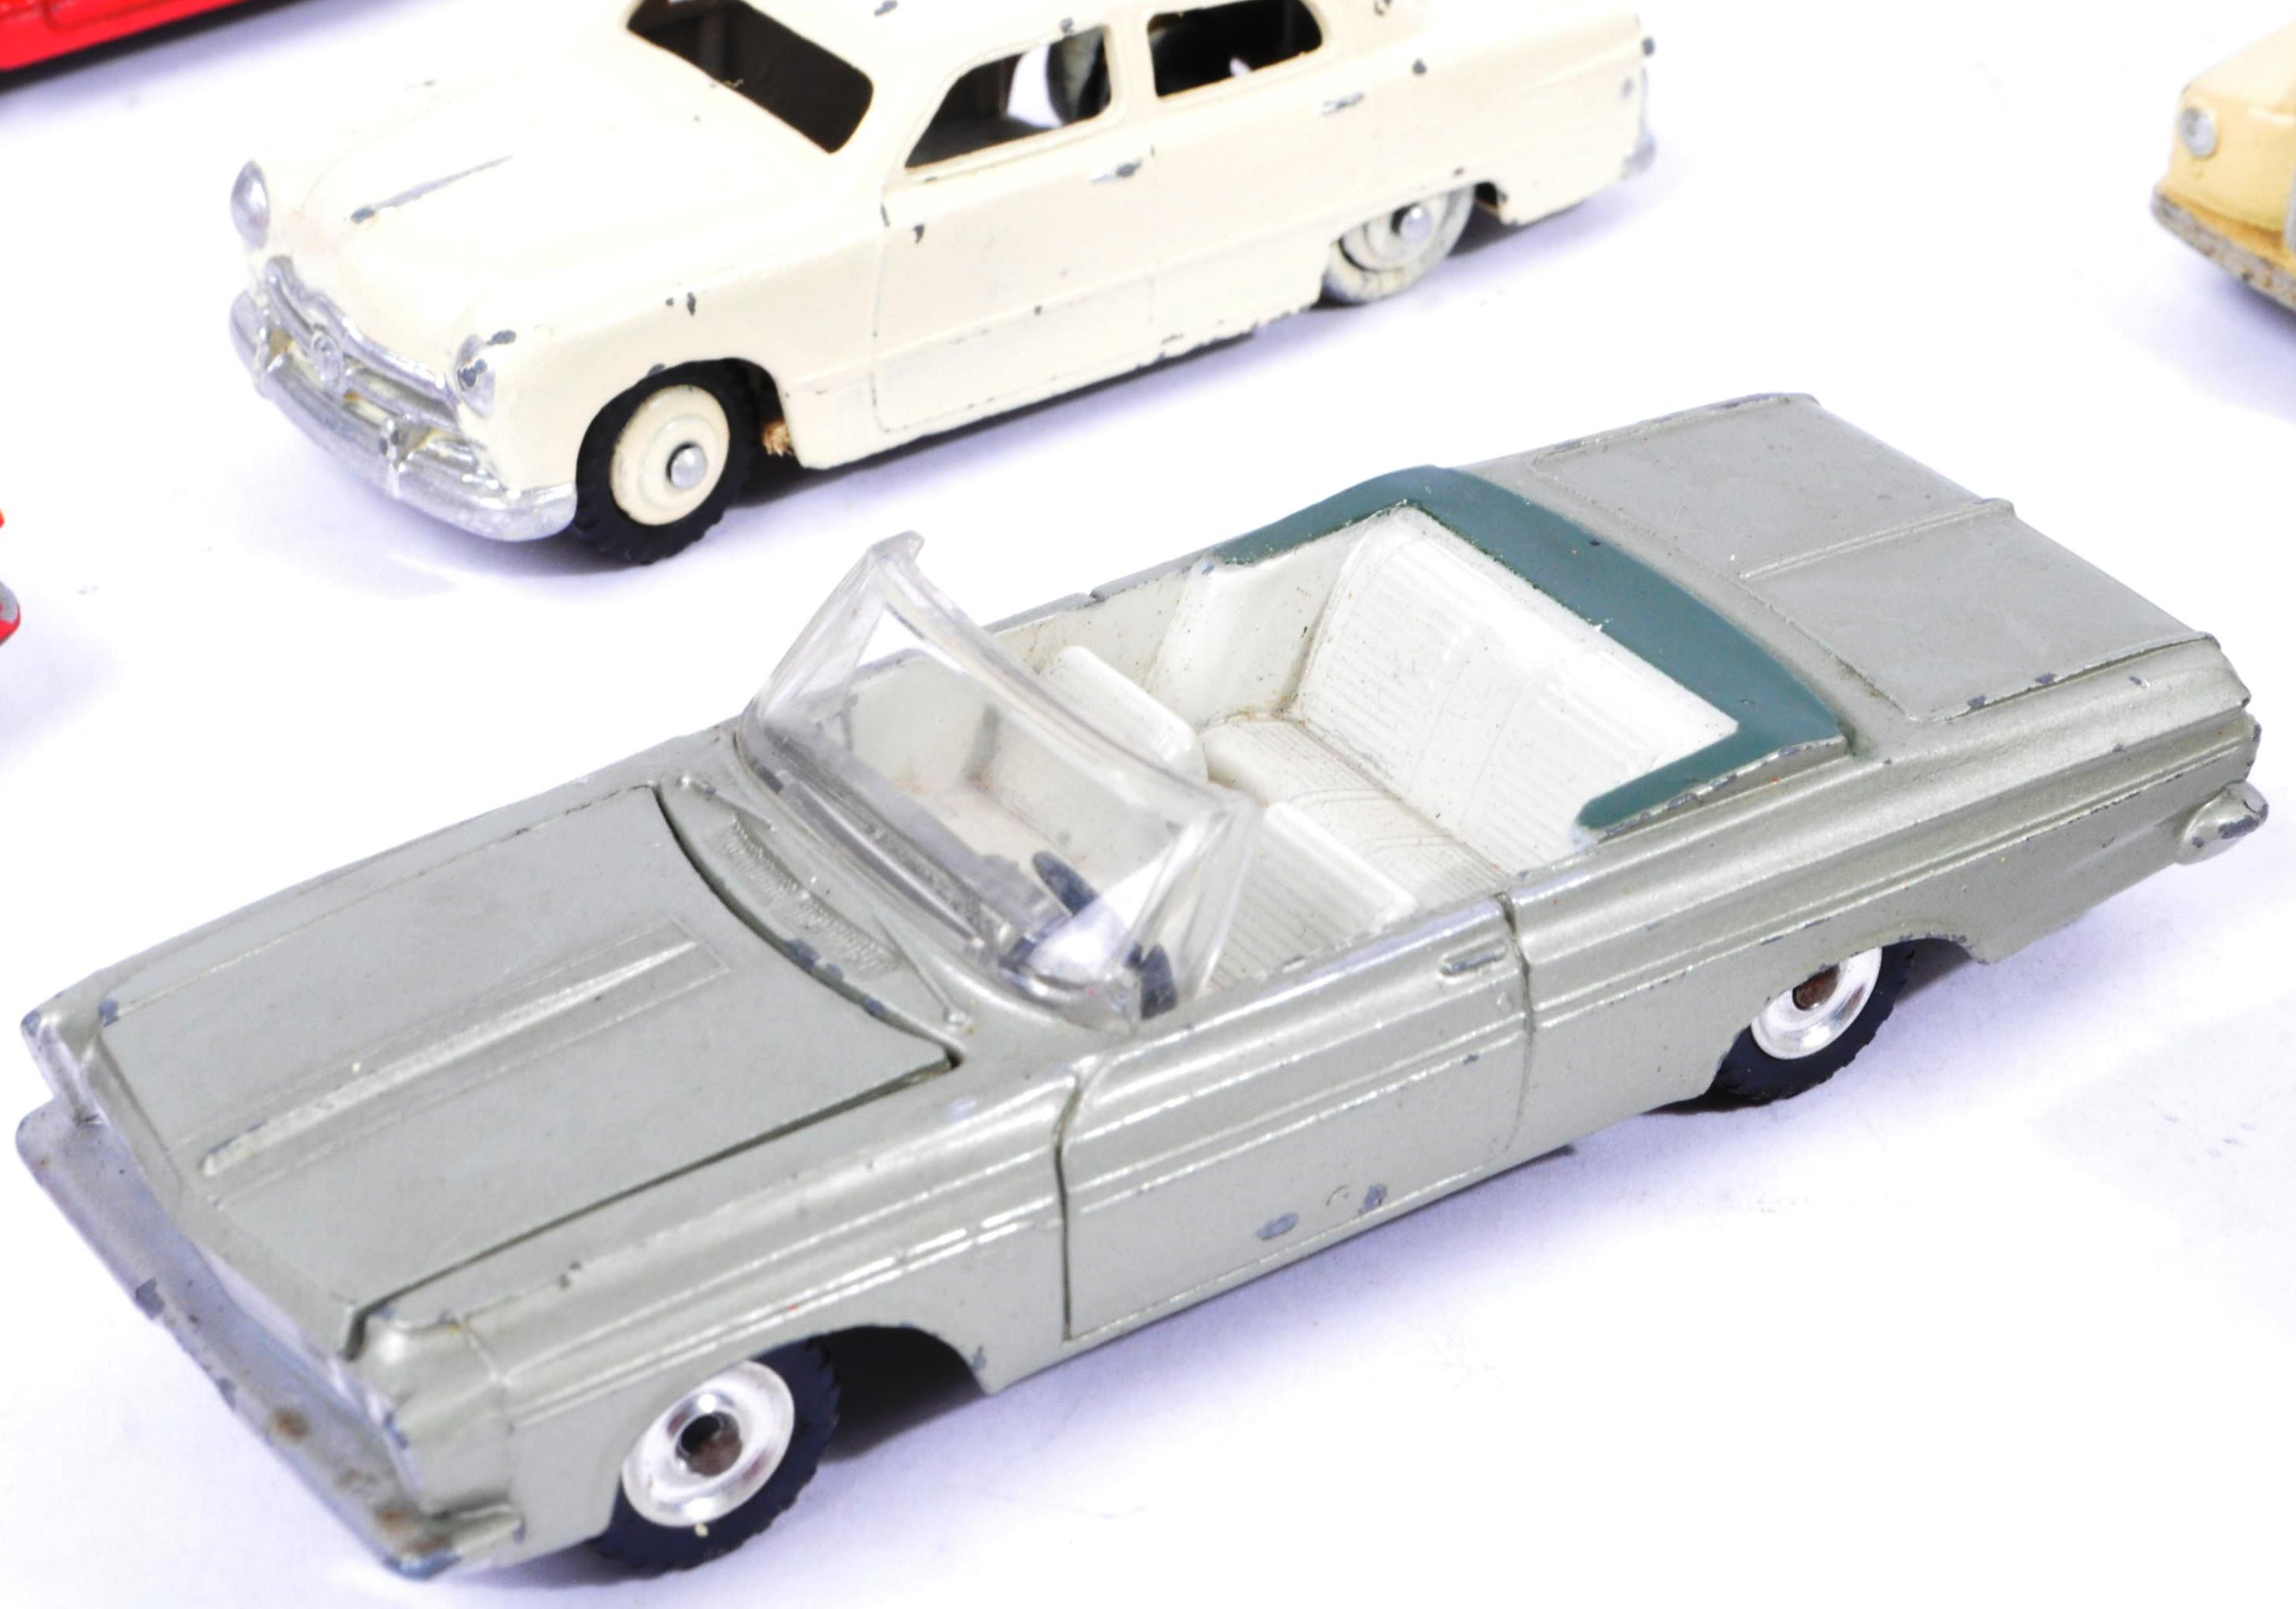 COLLECTION OF X10 VINTAGE DINKY TOYS DIECAST MODEL VEHICLES - Image 5 of 7